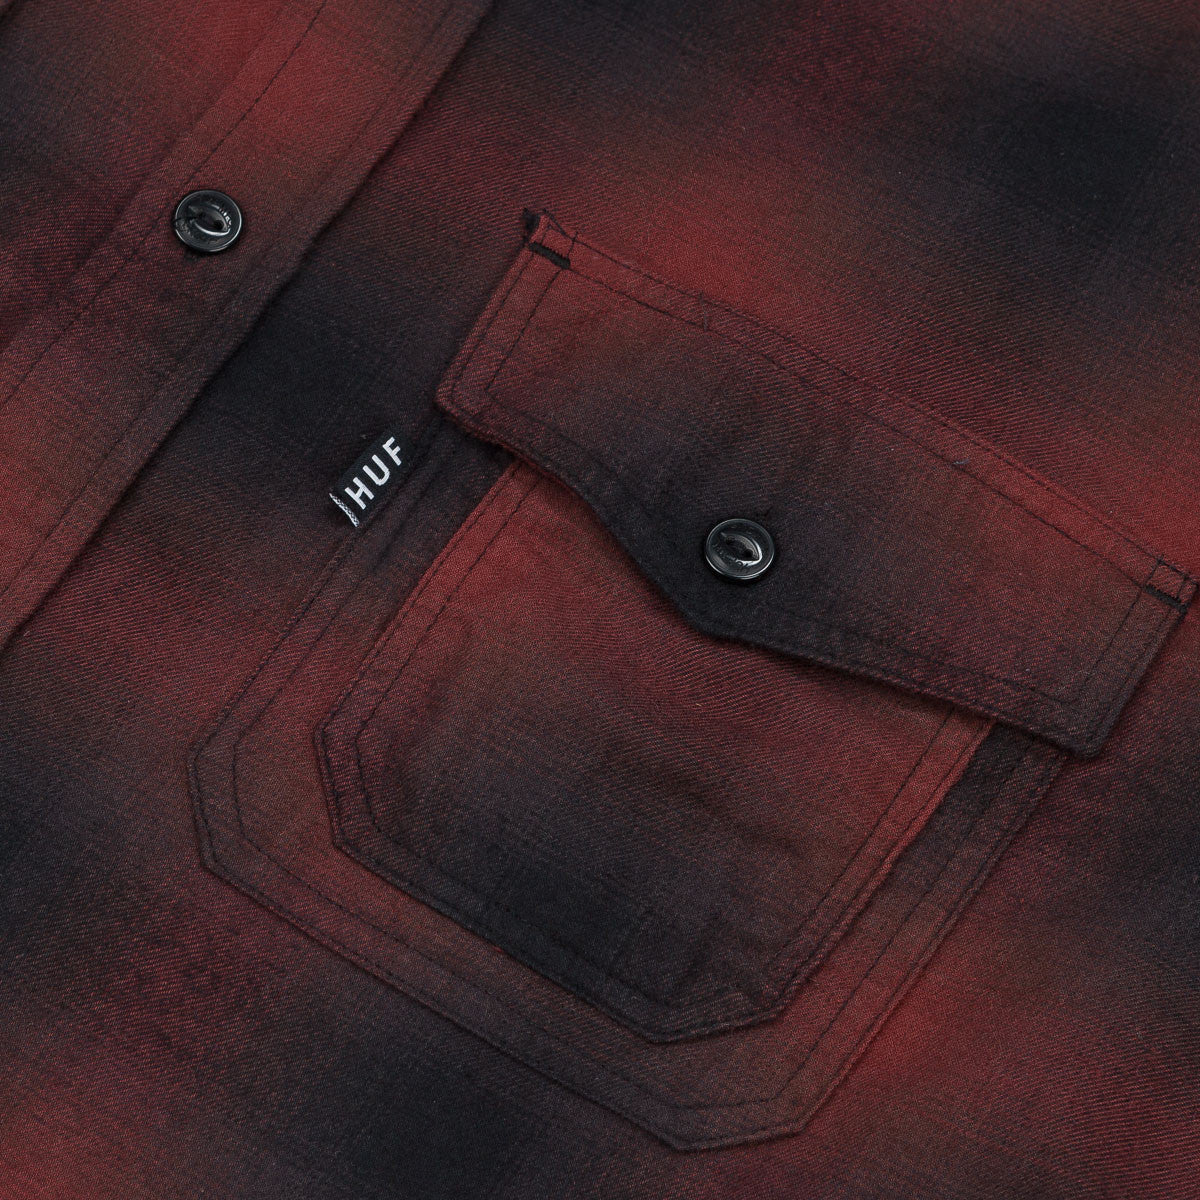 HUF Slauson Plaid Long Sleeve Shirt - Wine / Black